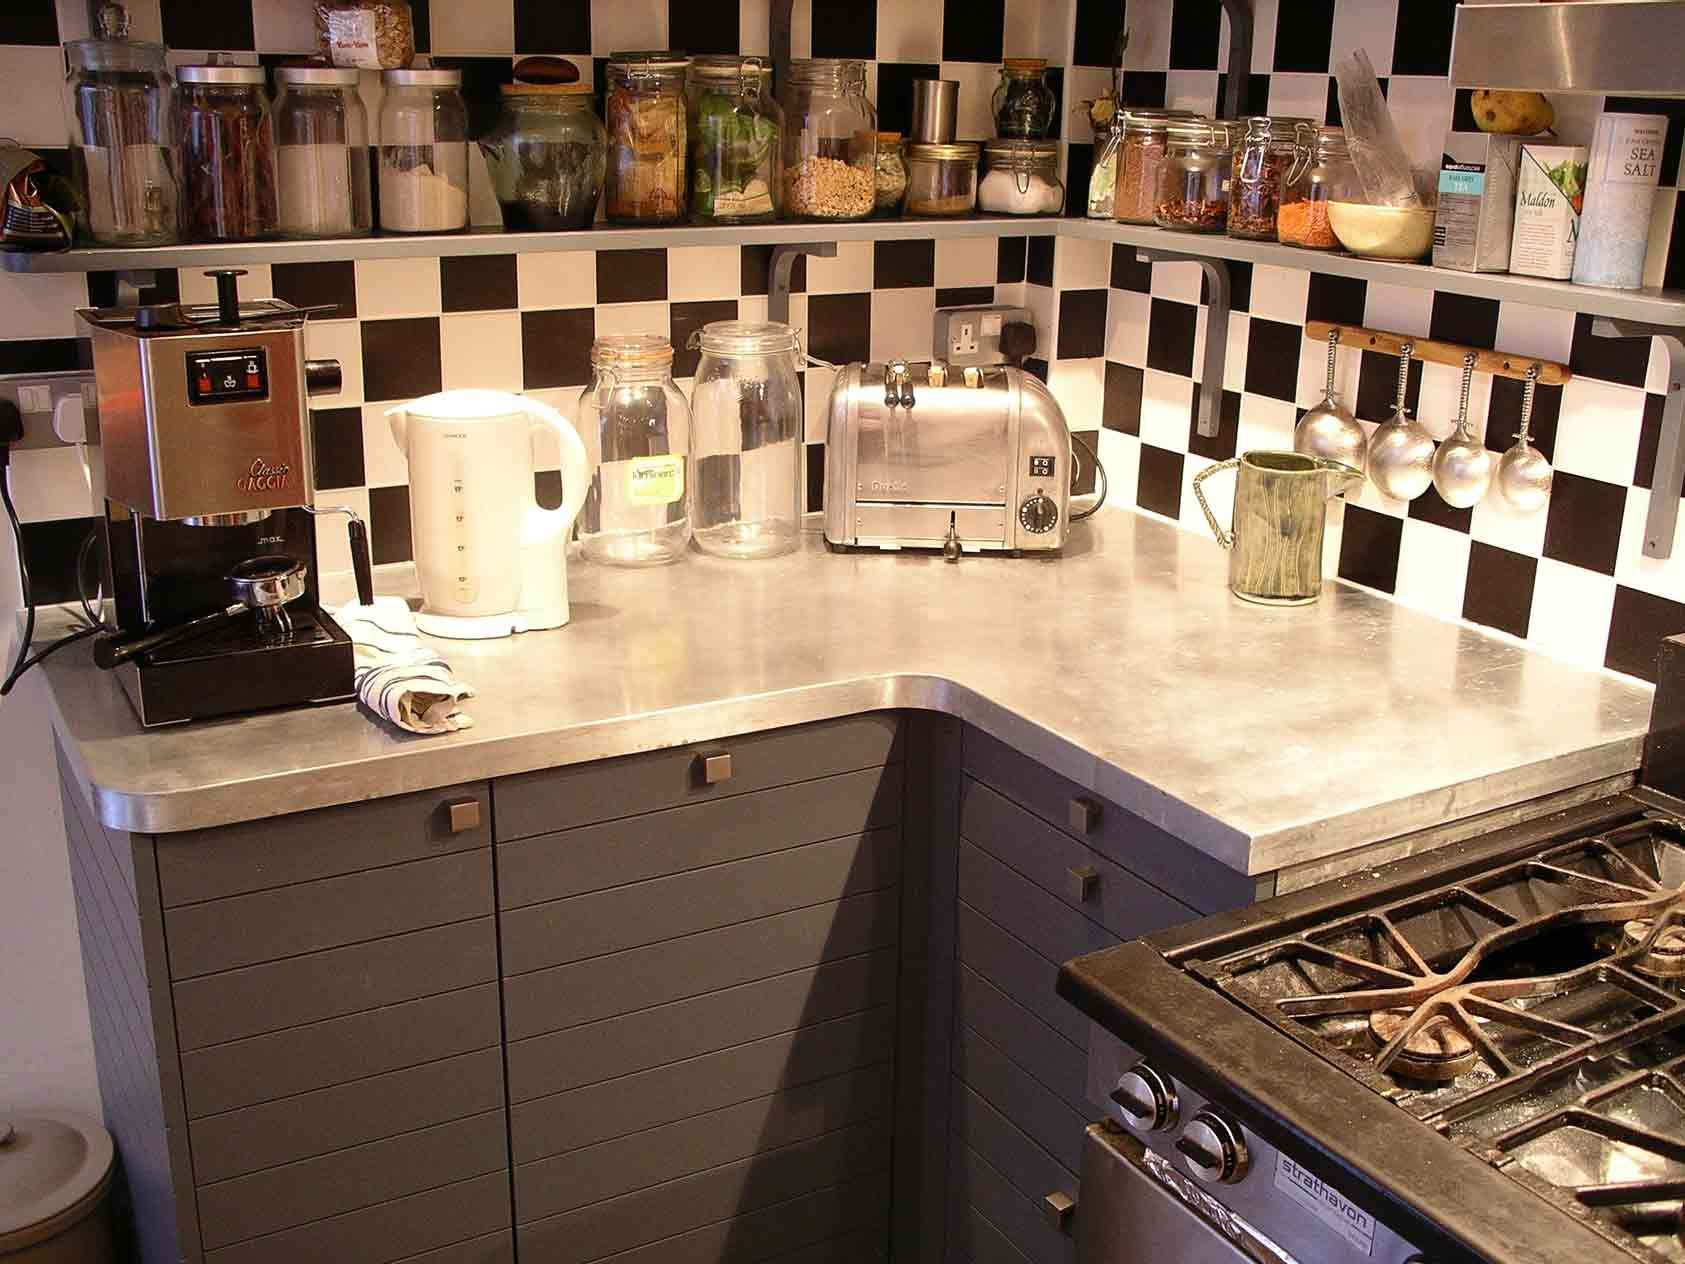 bespoke kitchen cabinets with horizontal slatted doors and custom made zinc worktop